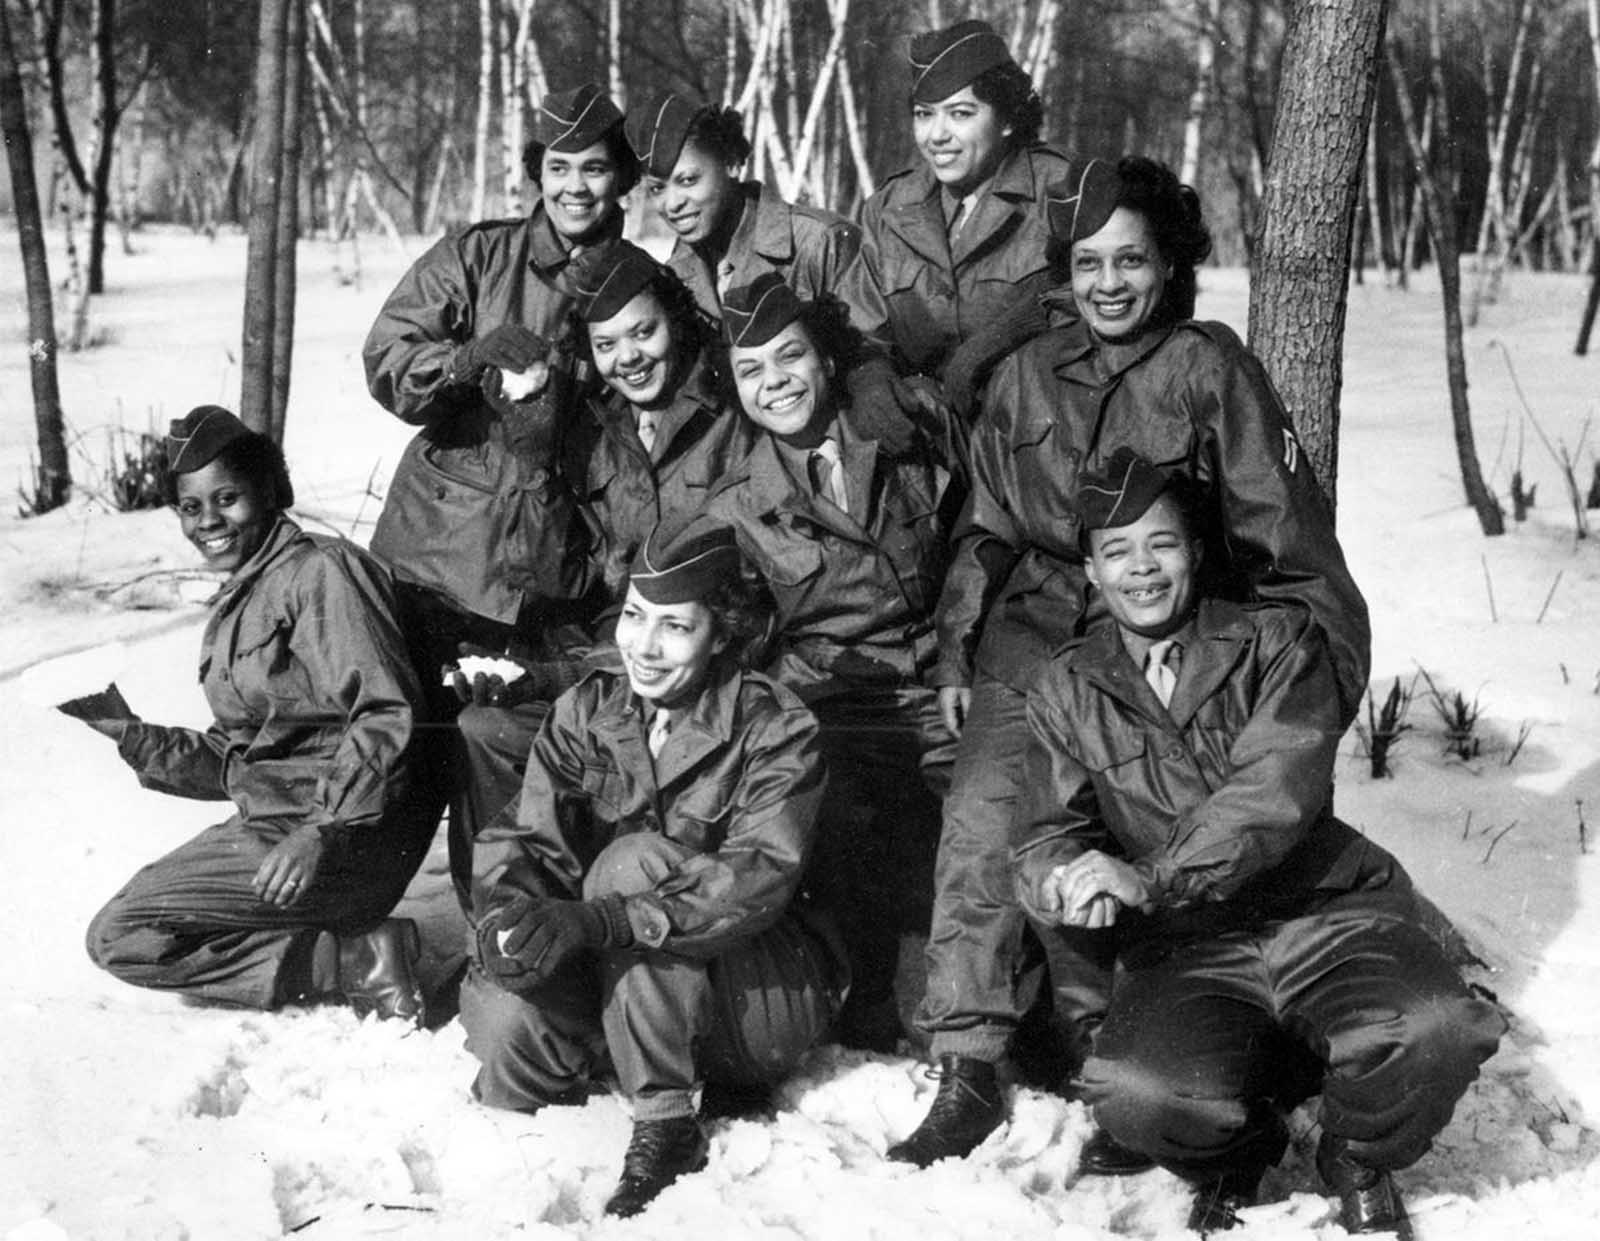 Members of the Women's Army Corps (WAC) pose at Camp Shanks, New York, before leaving from New York Port of Embarkation on February 2, 1945. The women are with the first contingent of Black American WACs to go overseas for the war effort From left to right are, kneeling: Pvt. Rose Stone; Pvt. Virginia Blake; and Pfc. Marie B. Gillisspie. Second row: Pvt. Genevieve Marshall; T/5 Fanny L. Talbert; and Cpl. Callie K. Smith. Third row: Pvt. Gladys Schuster Carter; T/4 Evelyn C. Martin; and Pfc. Theodora Palmer.